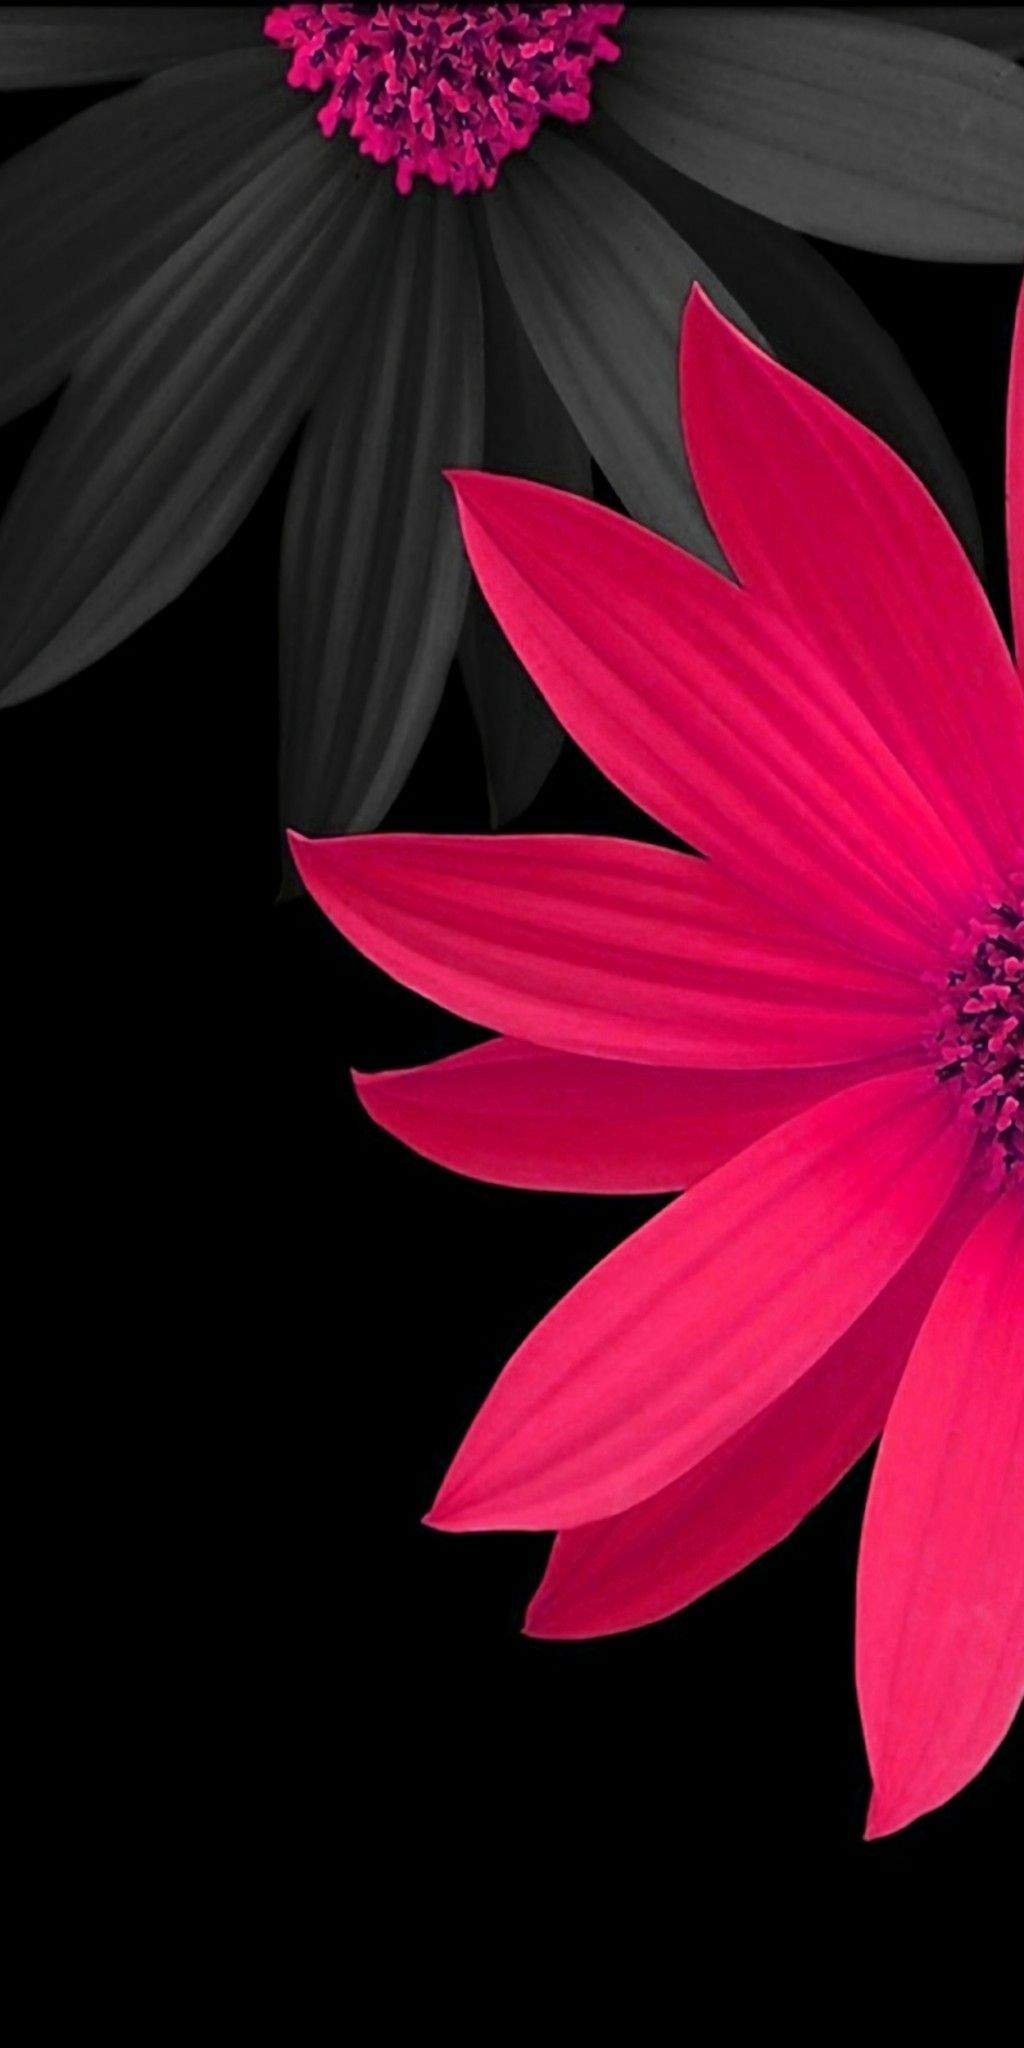 Wallpaper 3d Flower Posted By John Anderson